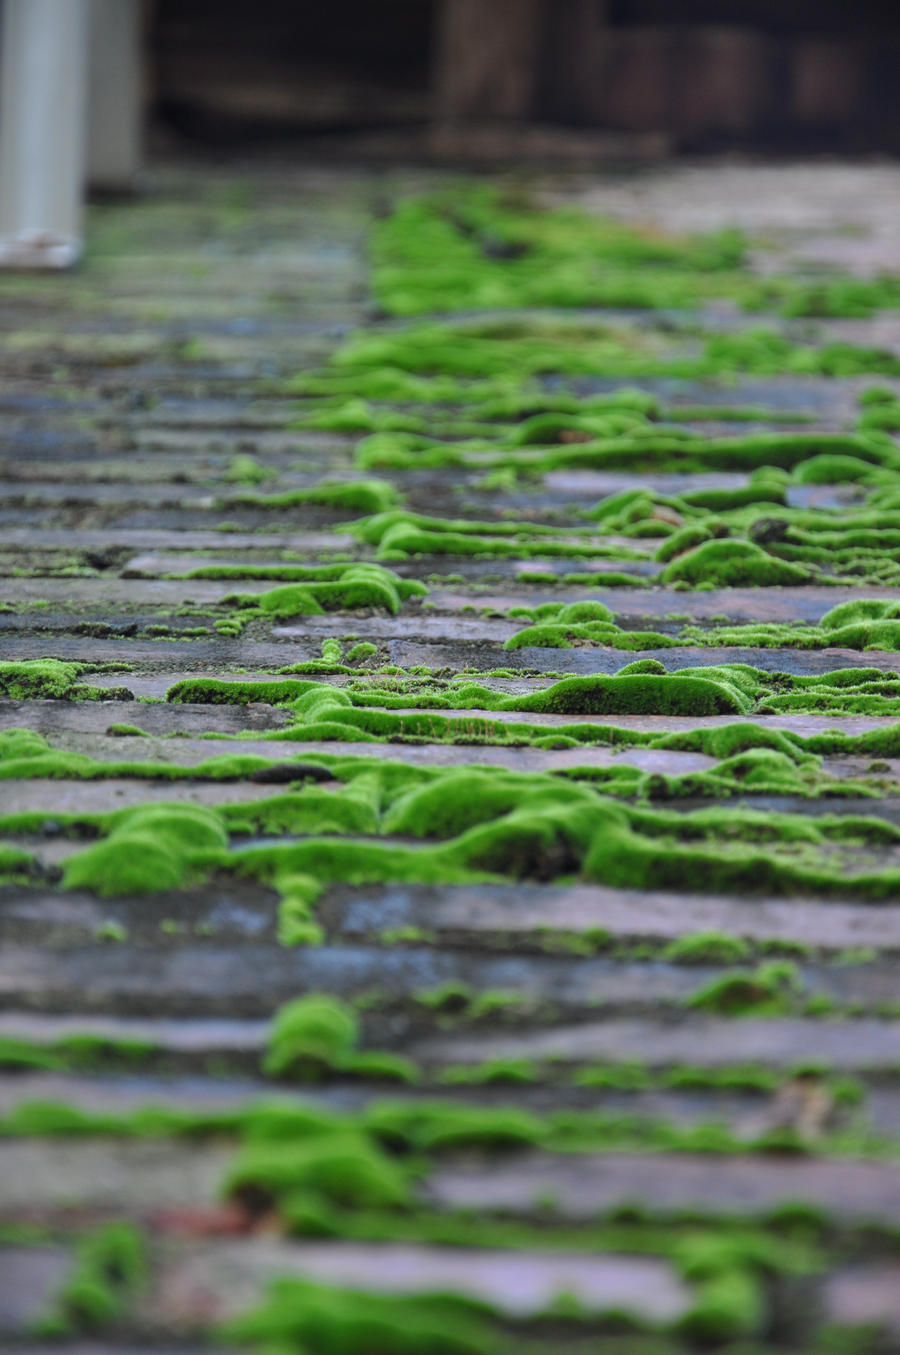 Mossy Brick by Shroomkin